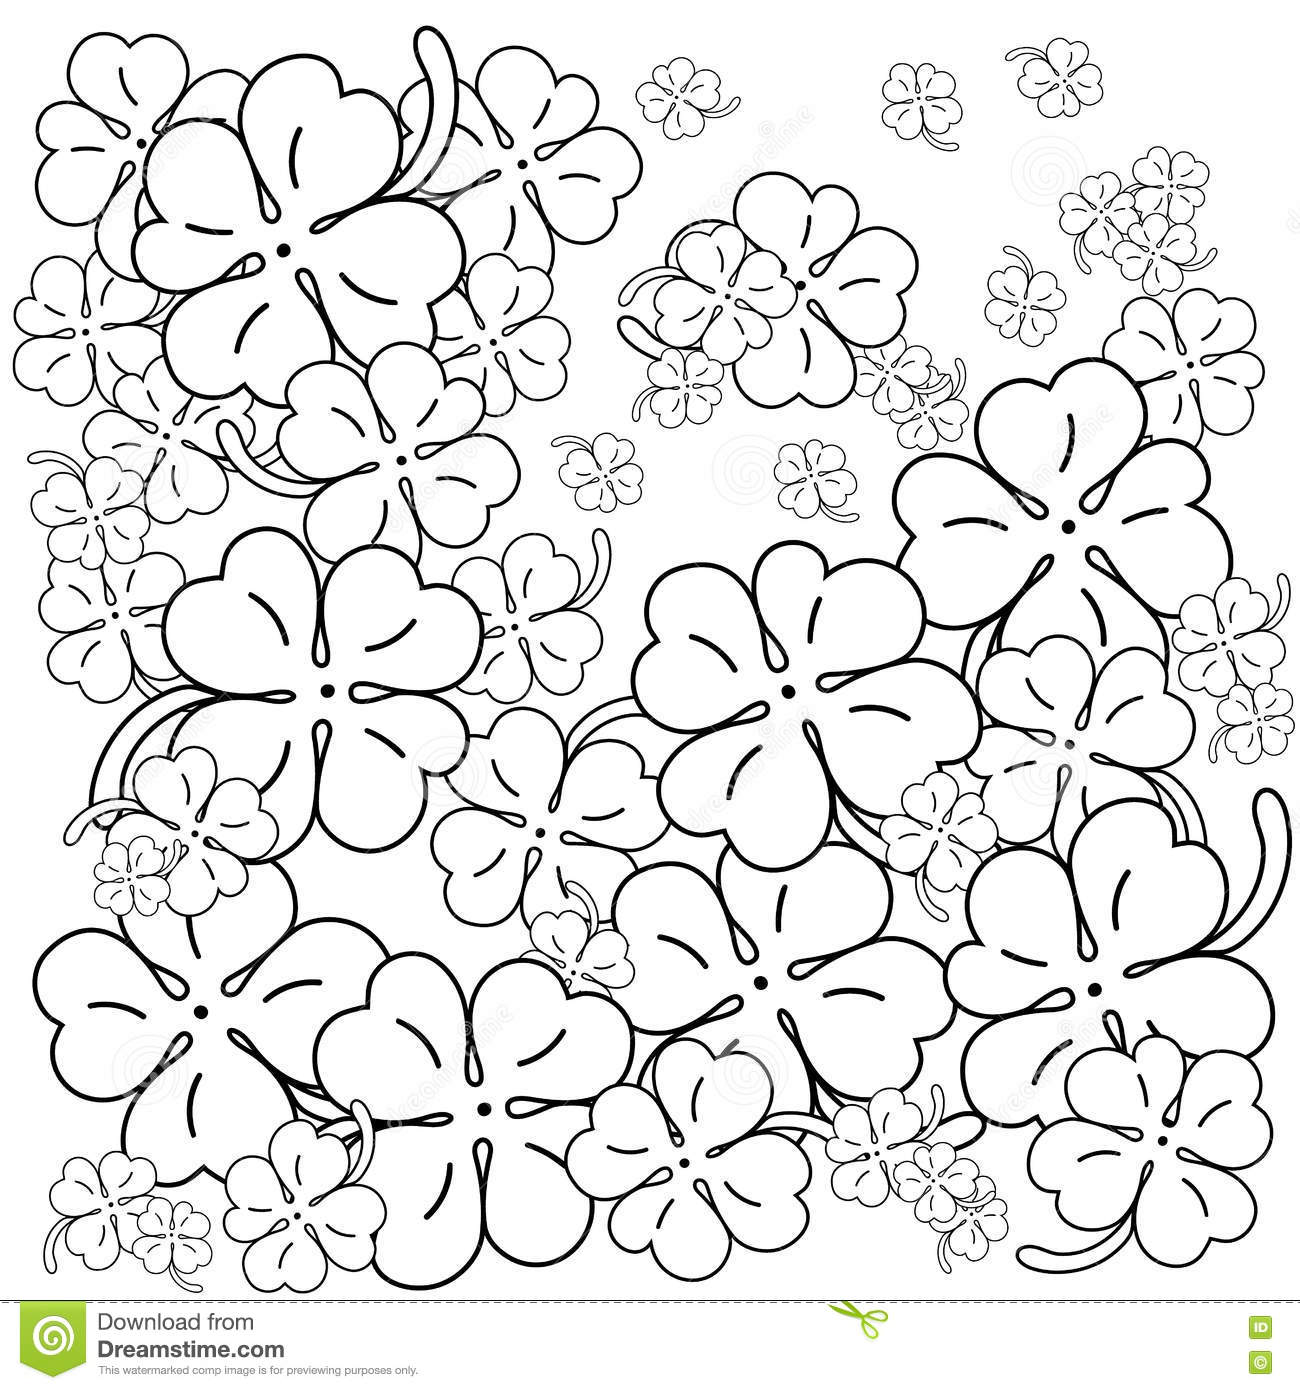 Saint Patrick Day Coloring Book Cartoon Vector